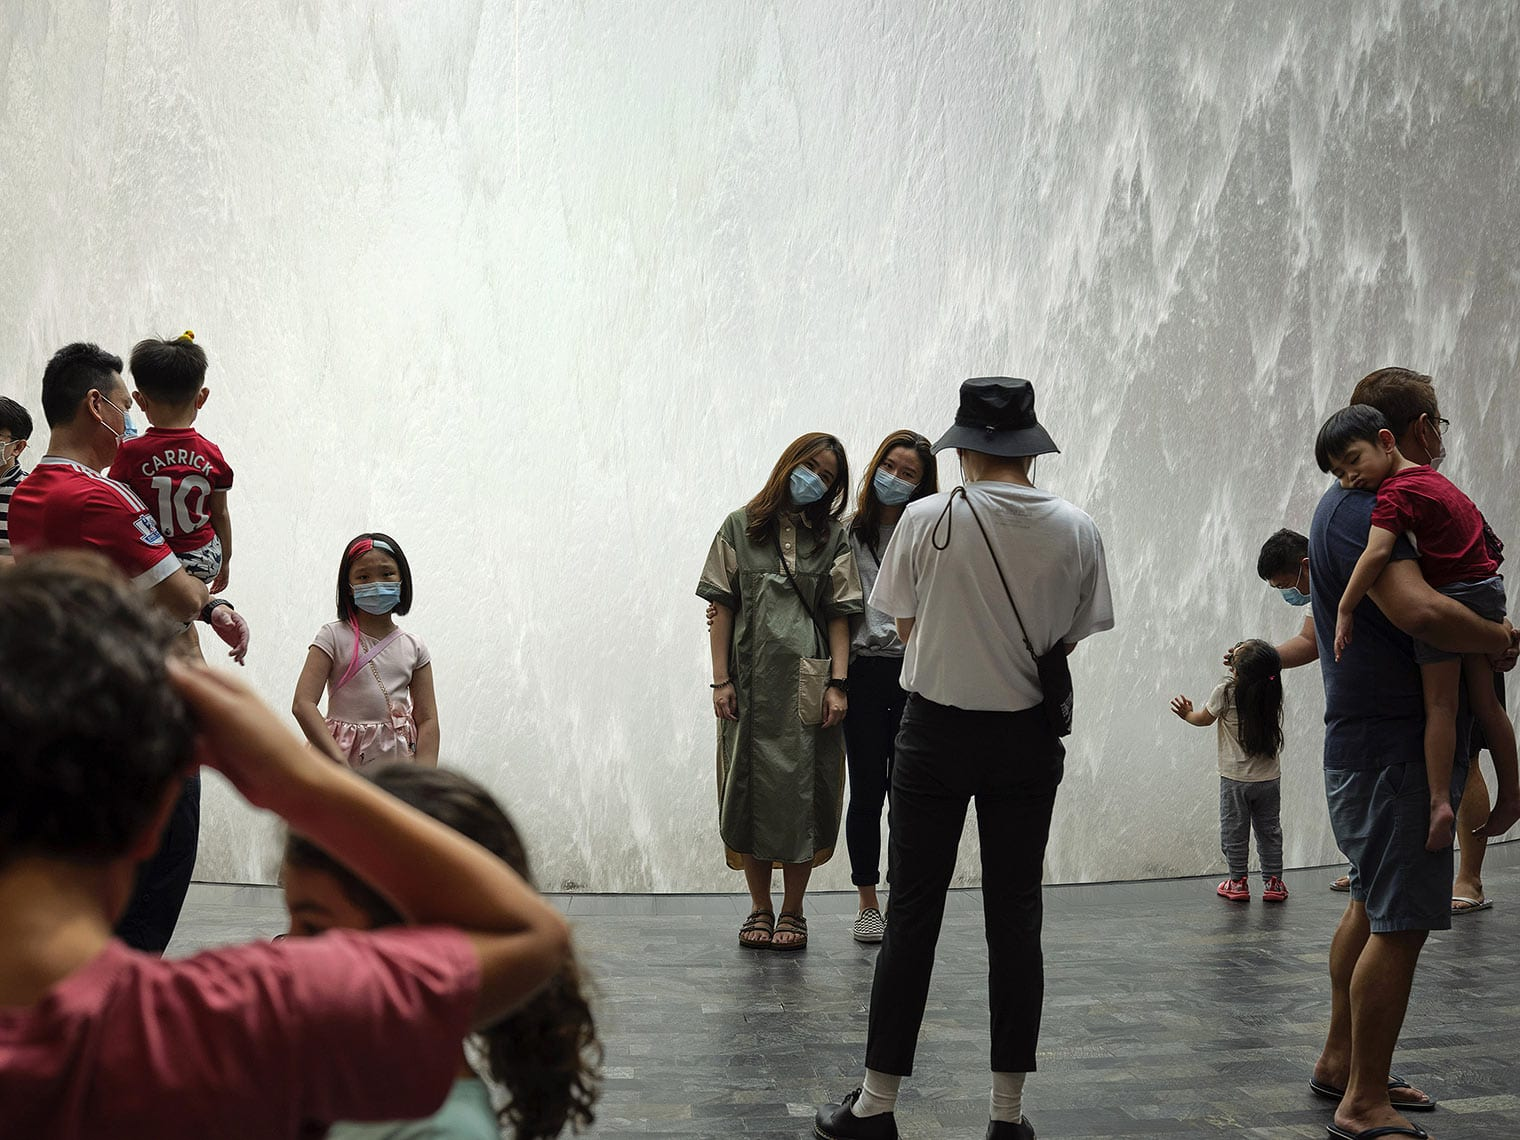 Several masked people stand, look, and take pictures in front of a wall of water